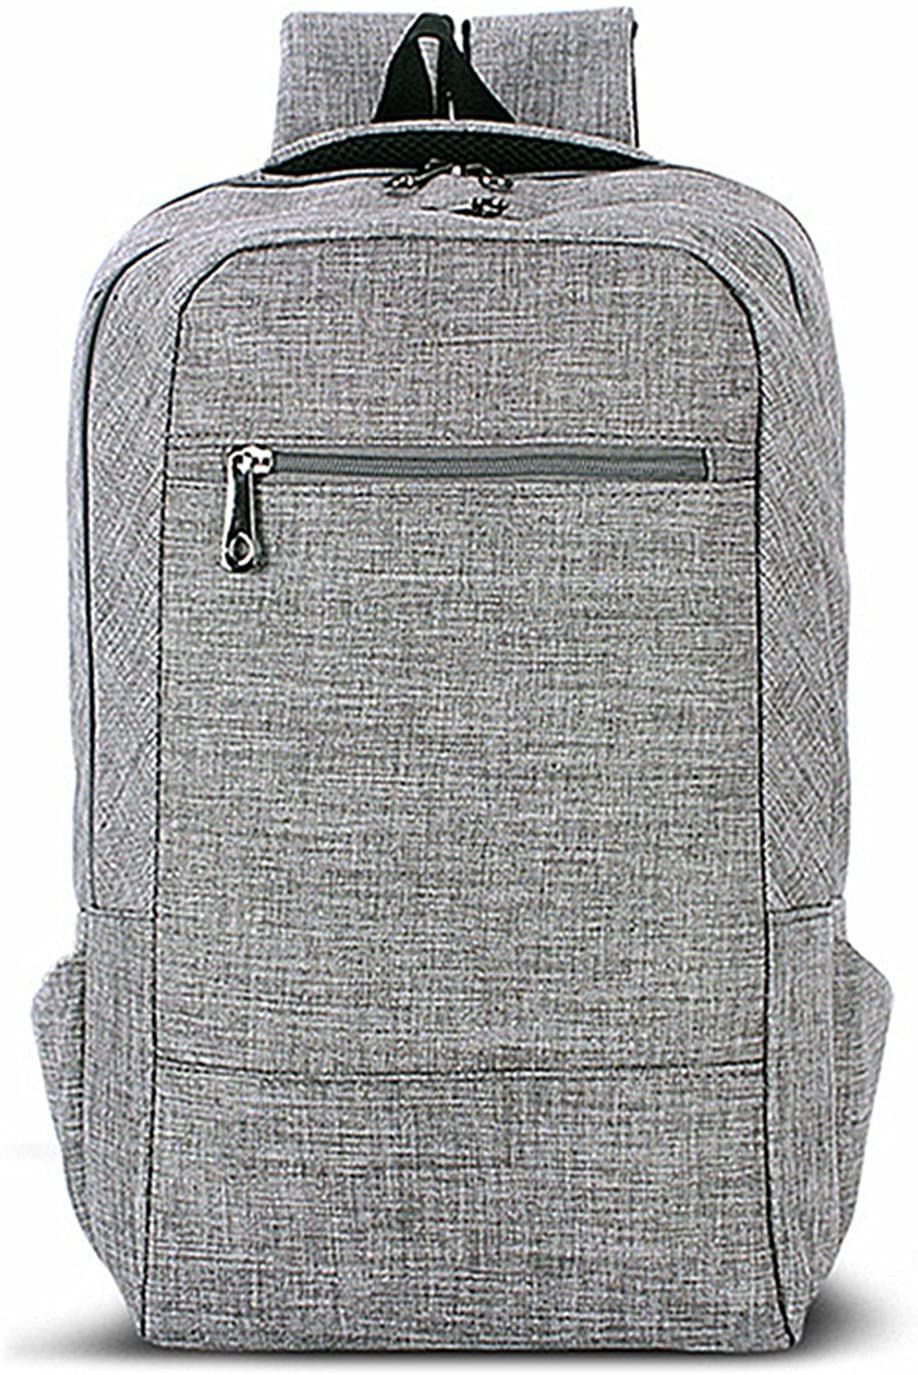 Laptop Backpack,Tincon-Z 15 15.6 Inch College Backpacks Lightweight Travel Daypack - Grey (Grey)